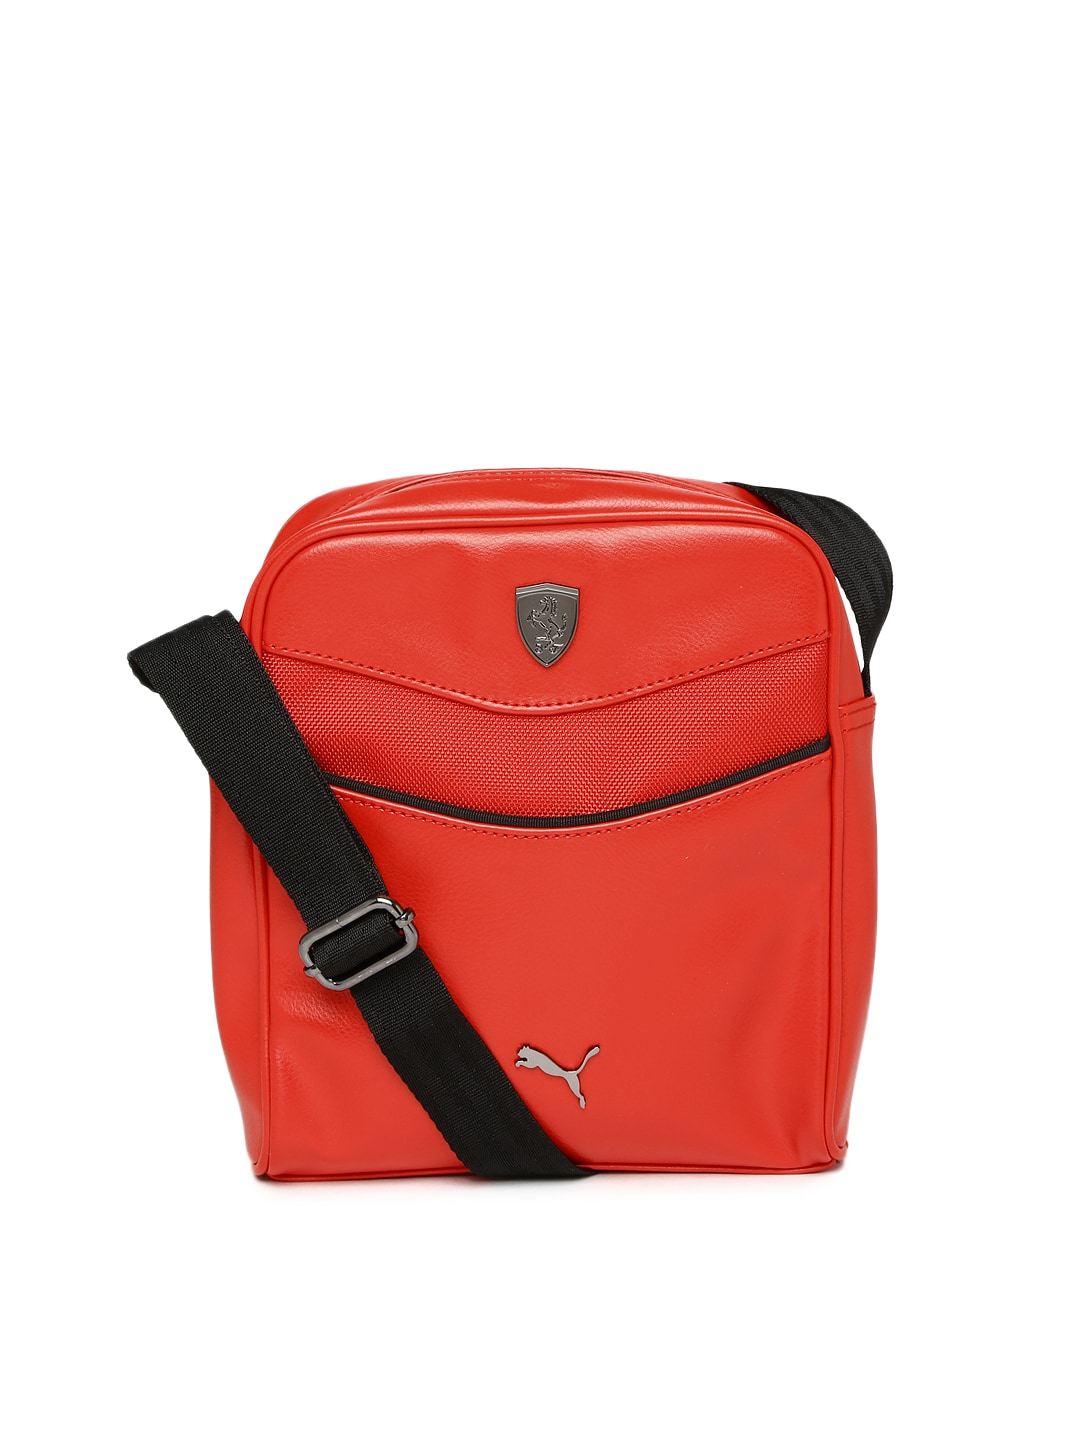 Puma 7394102 Unisex Red Ferrari Ls Messenger Bag - Best Price in ... b3620b700da93